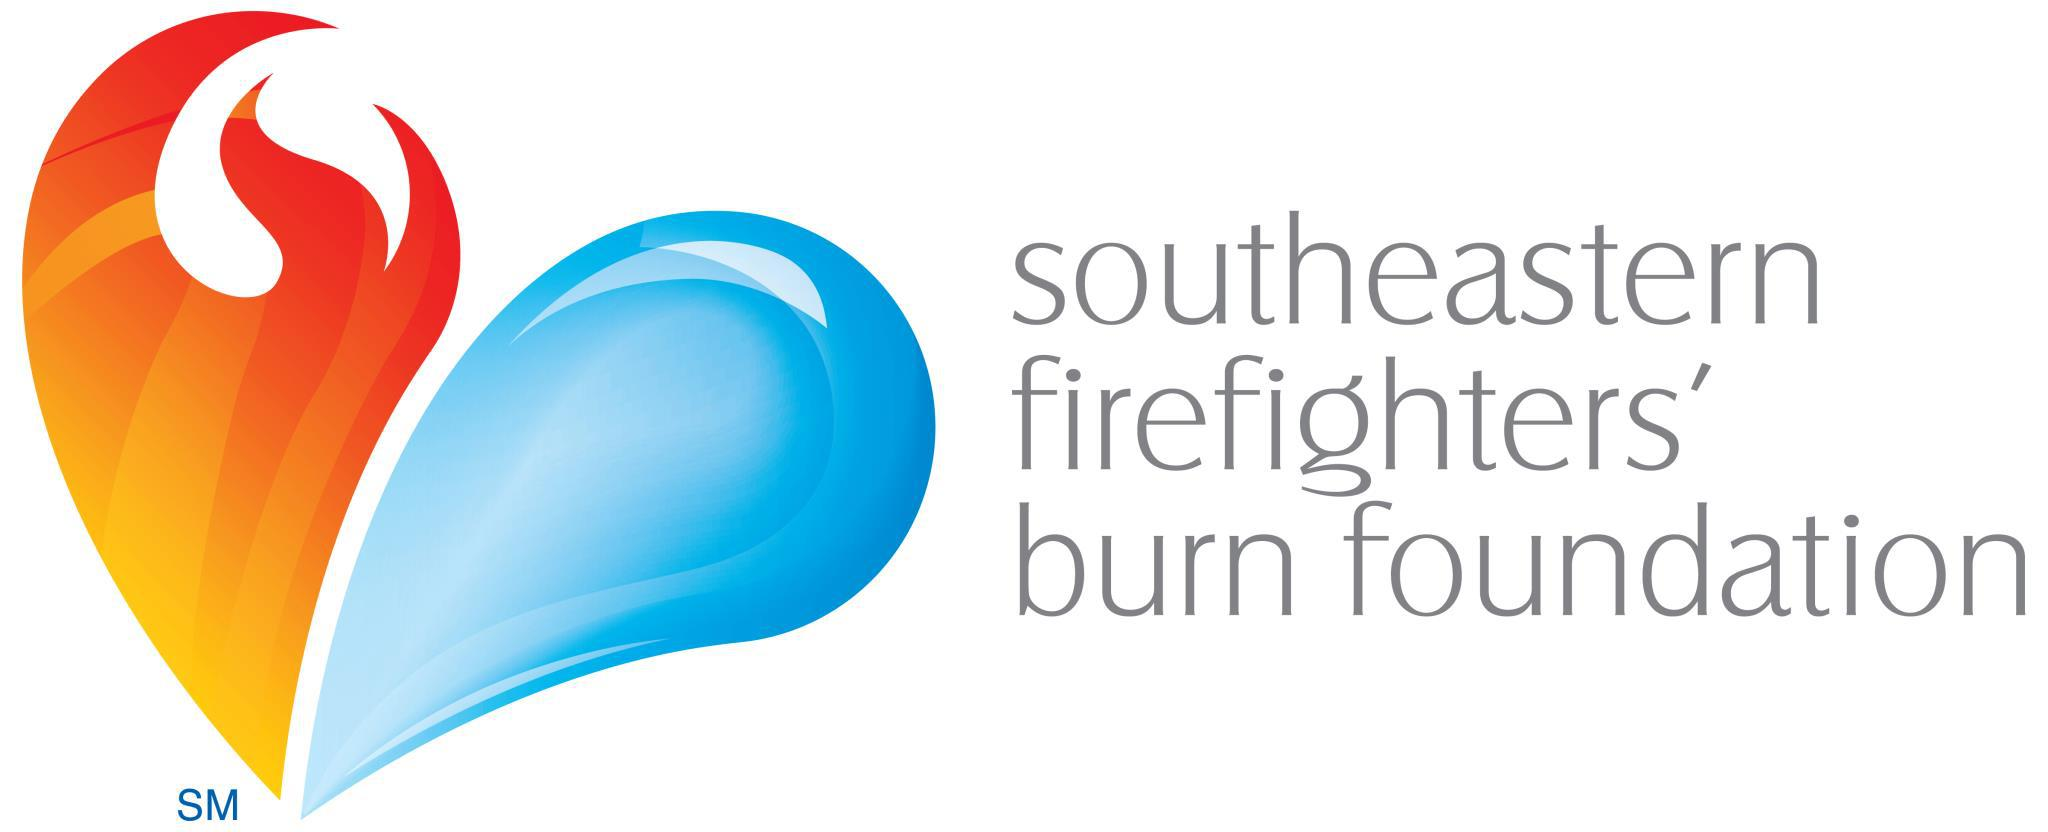 Southeastern Firefighters Burn Foundation